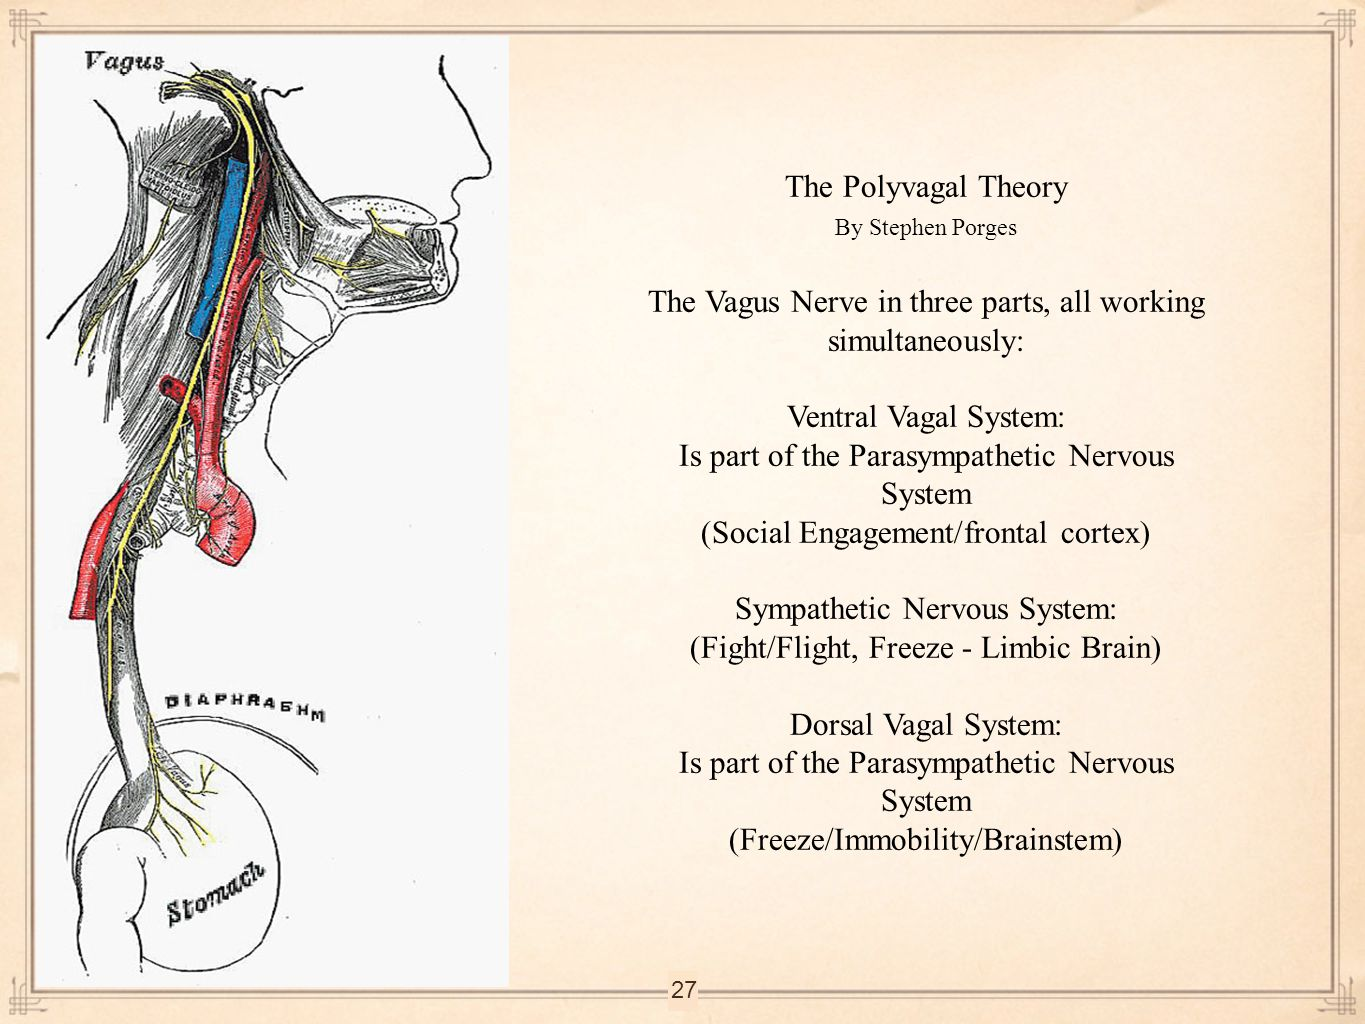 The Vagus Nerve in three parts, all working simultaneously: